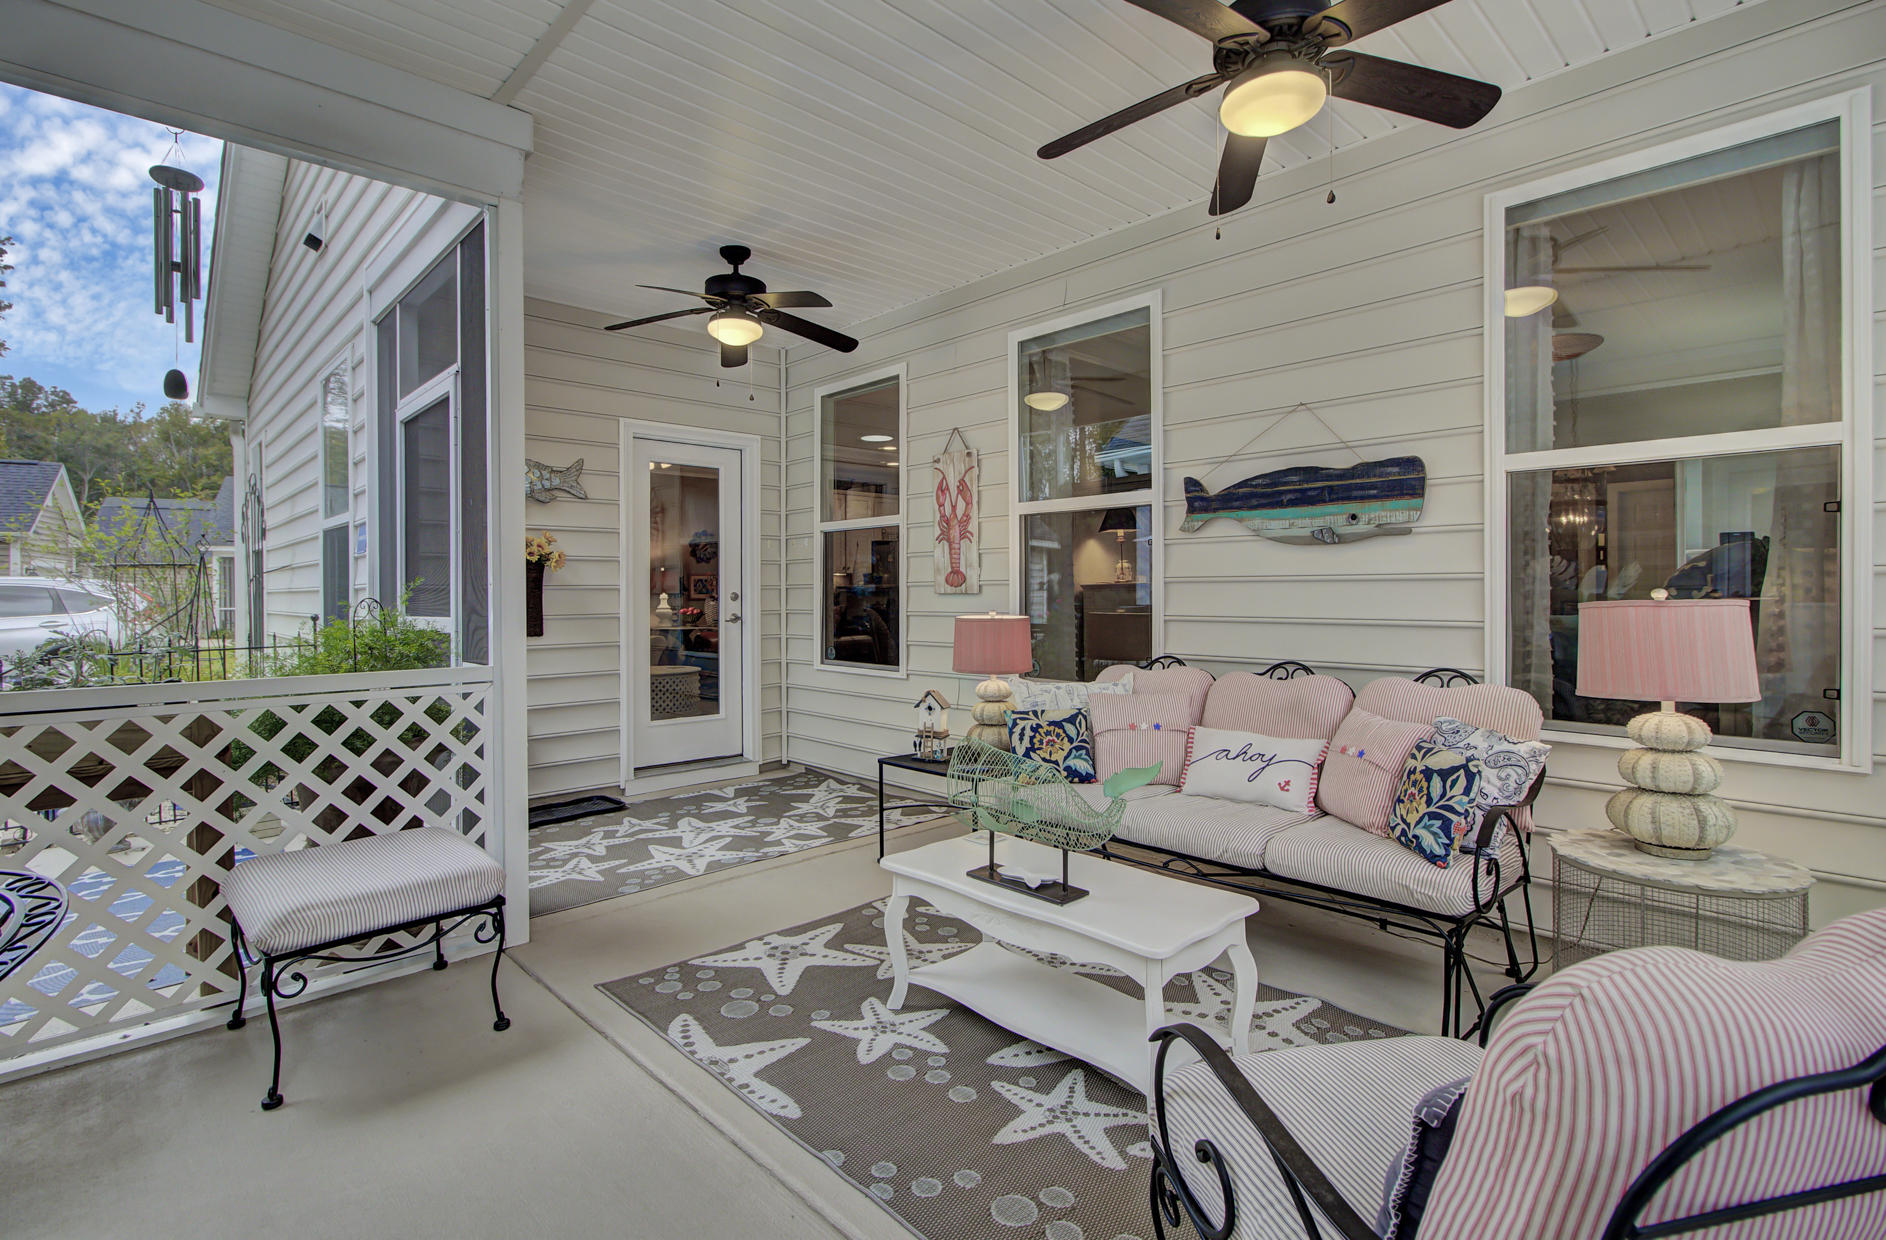 Boltons Landing Homes For Sale - 3034 Scuba, Charleston, SC - 36